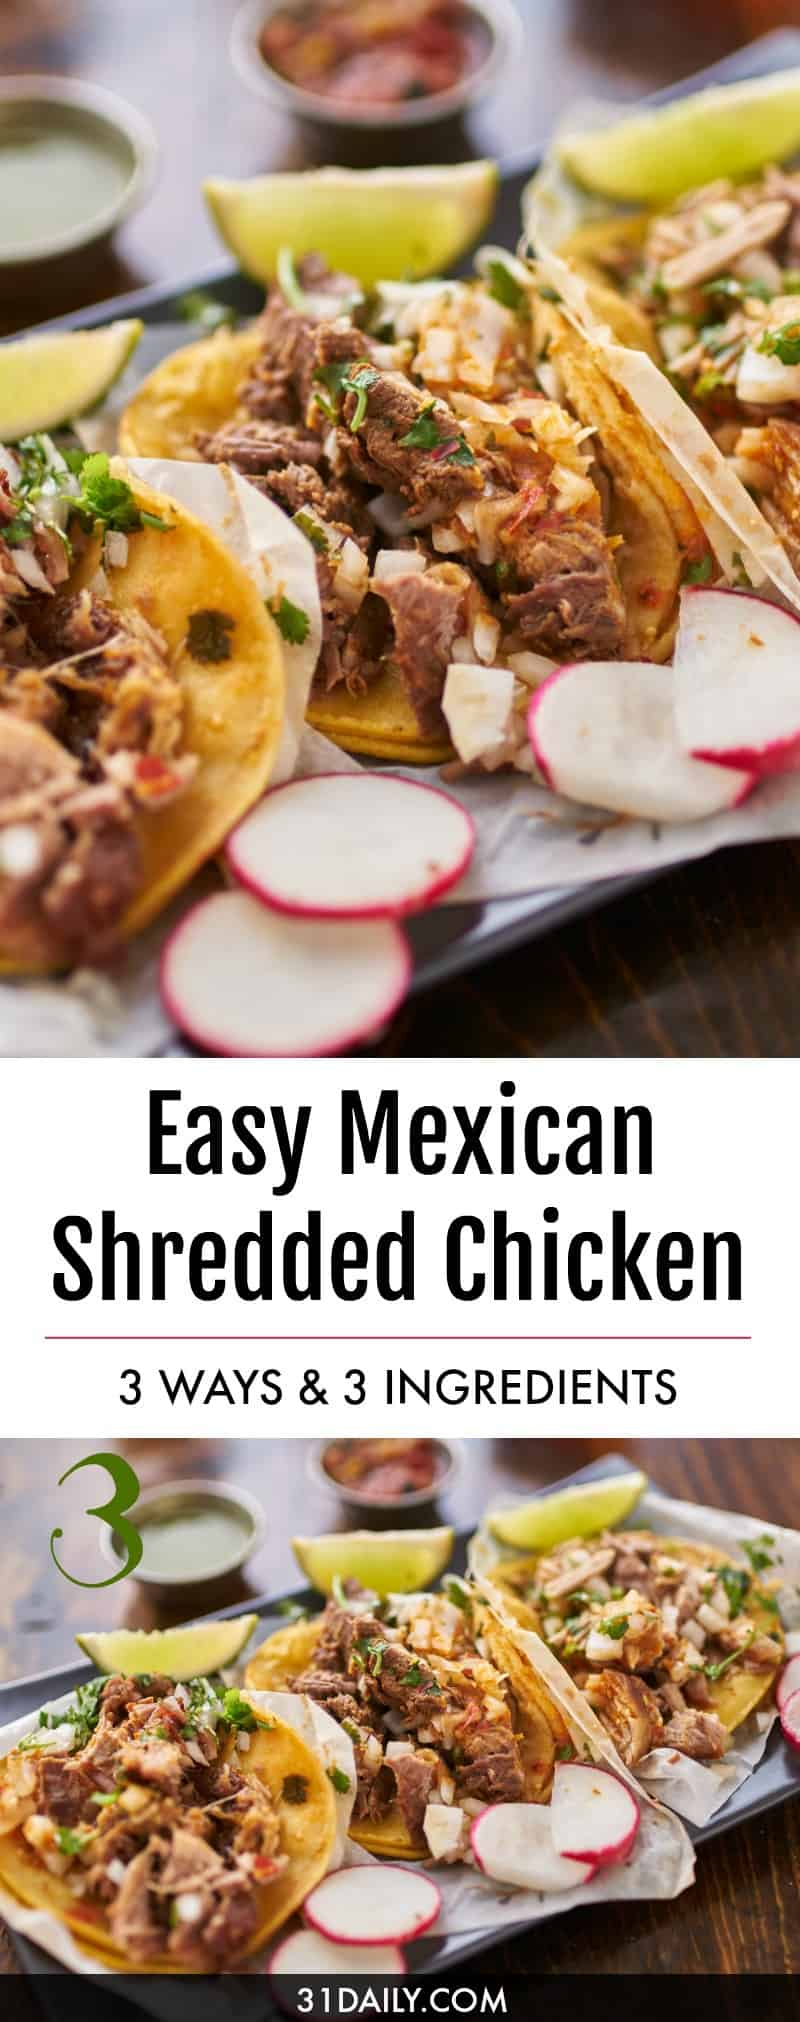 Easy Mexican Shredded Chicken - 3 Ways | 31Daily.com